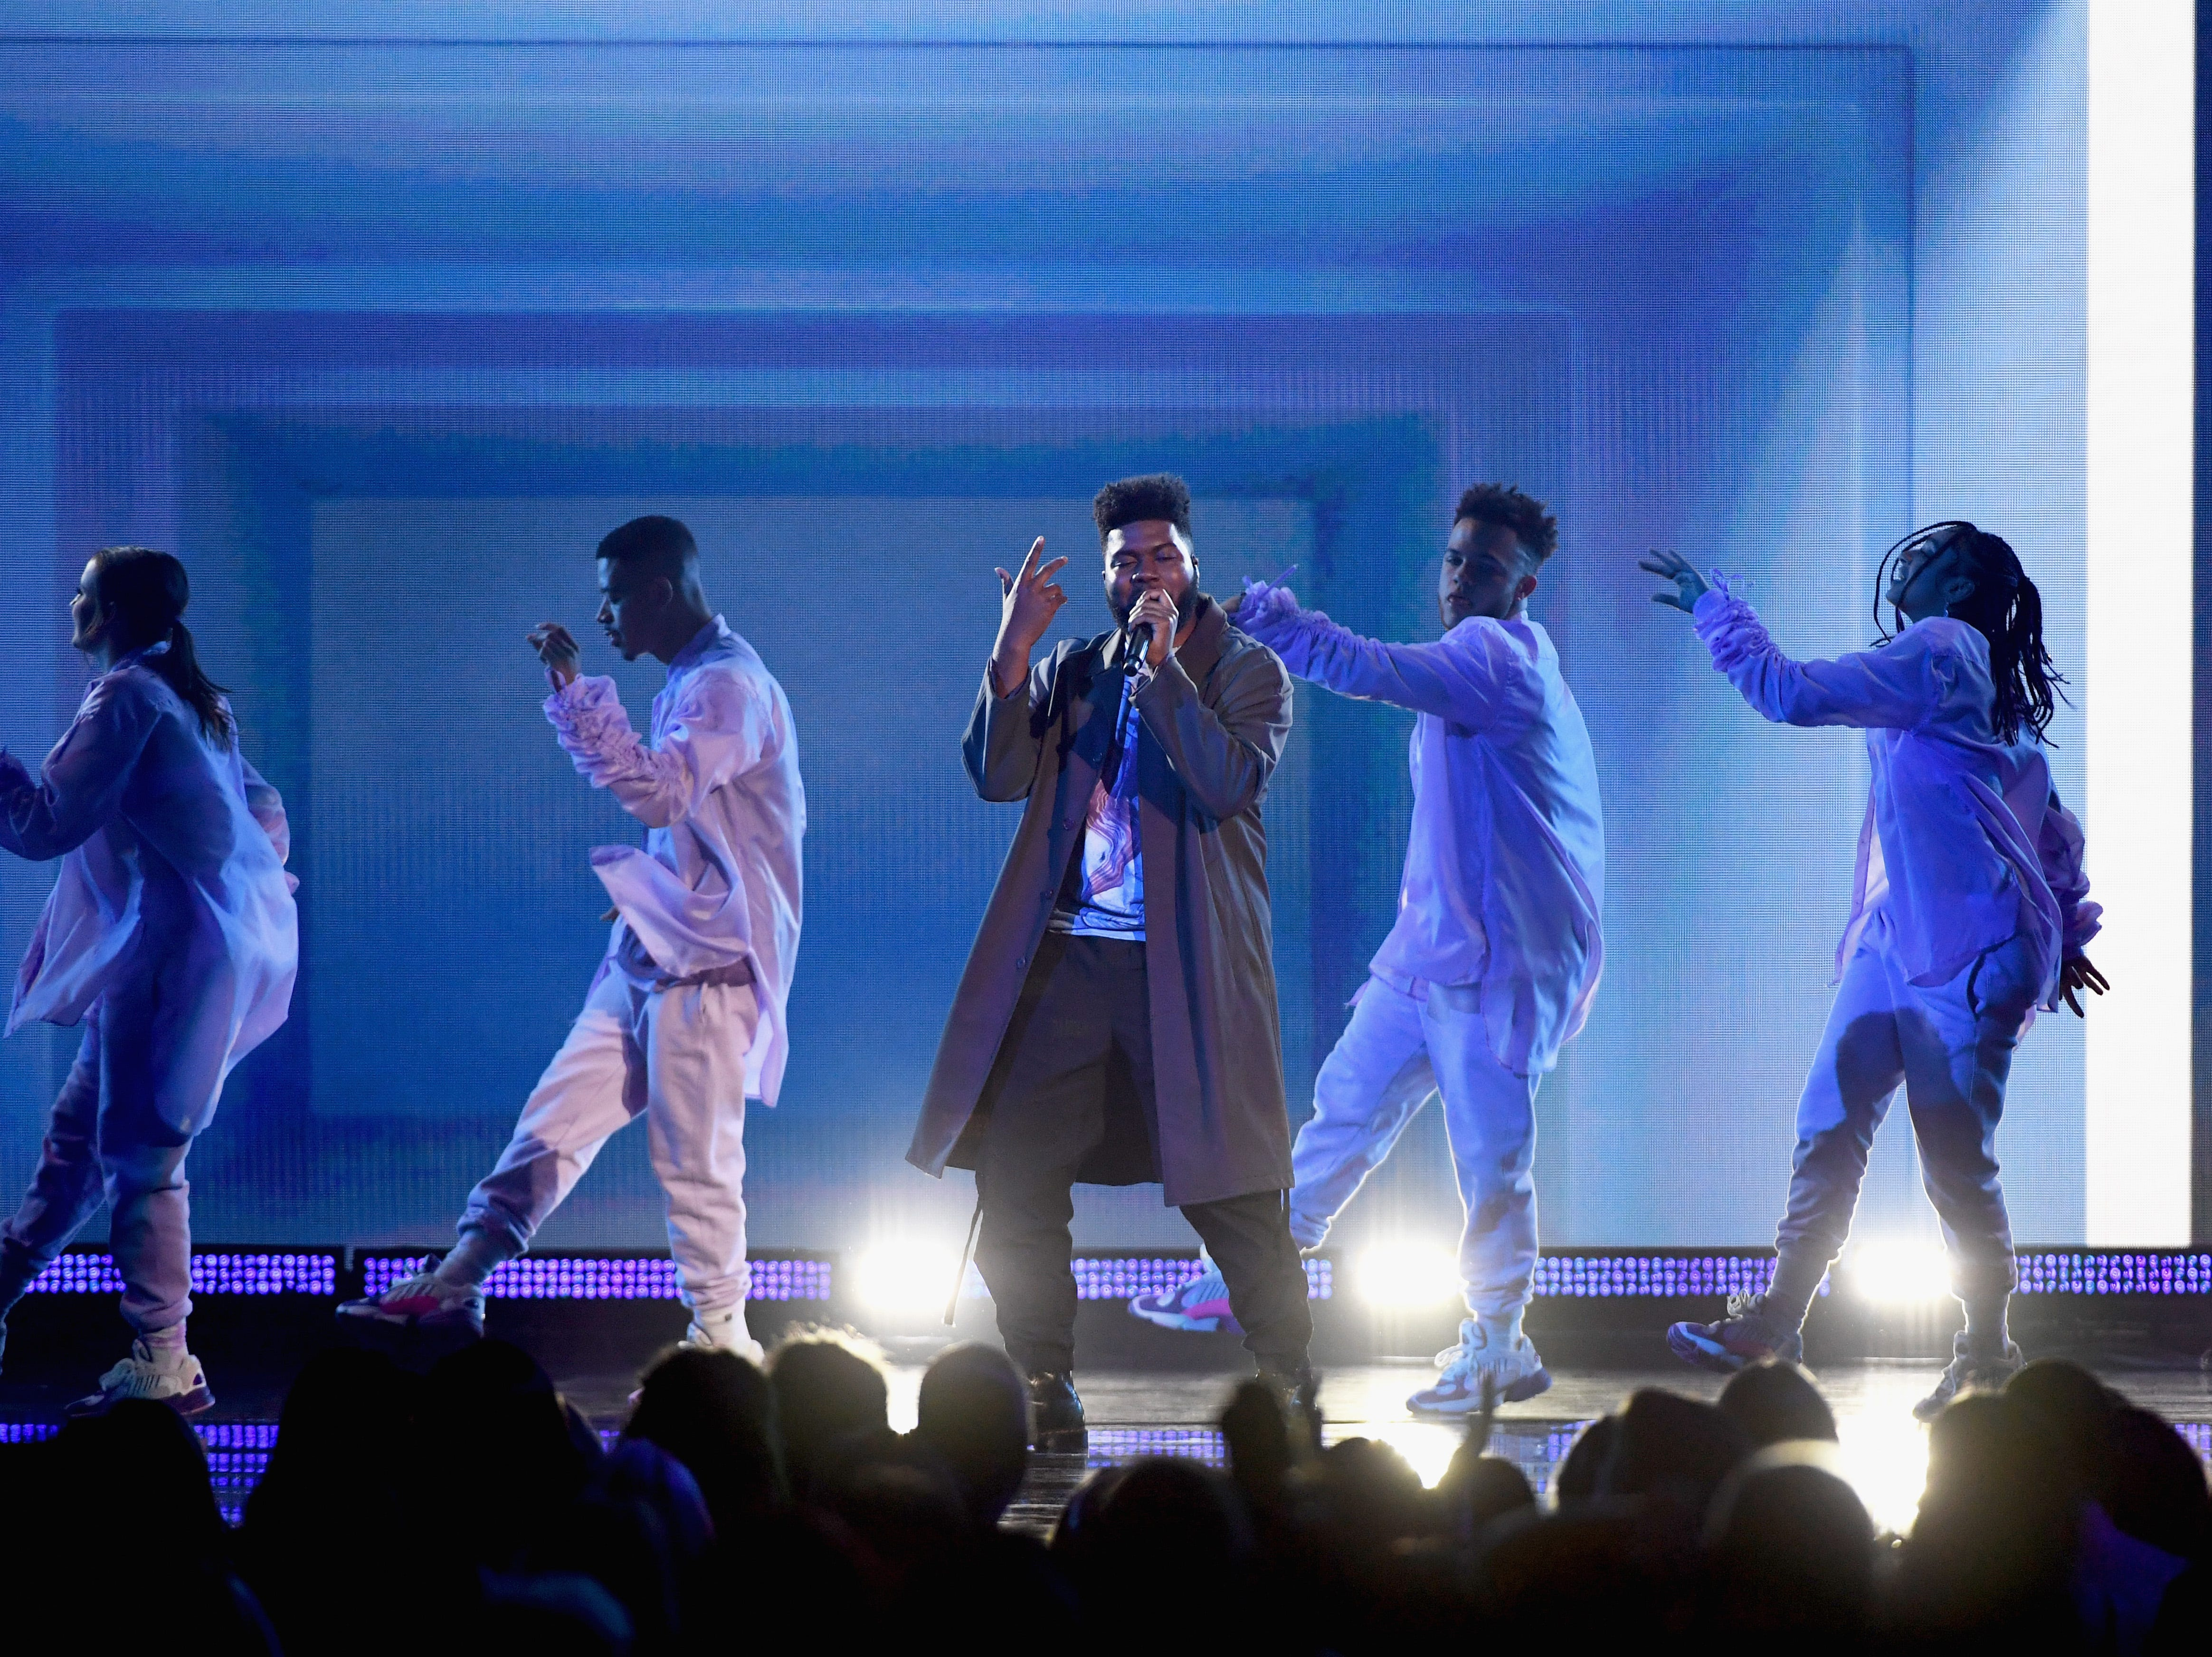 Khalid performs onstage during the 2019 Billboard Music Awards at MGM Grand Garden Arena on May 1, 2019 in Las Vegas, Nevada.